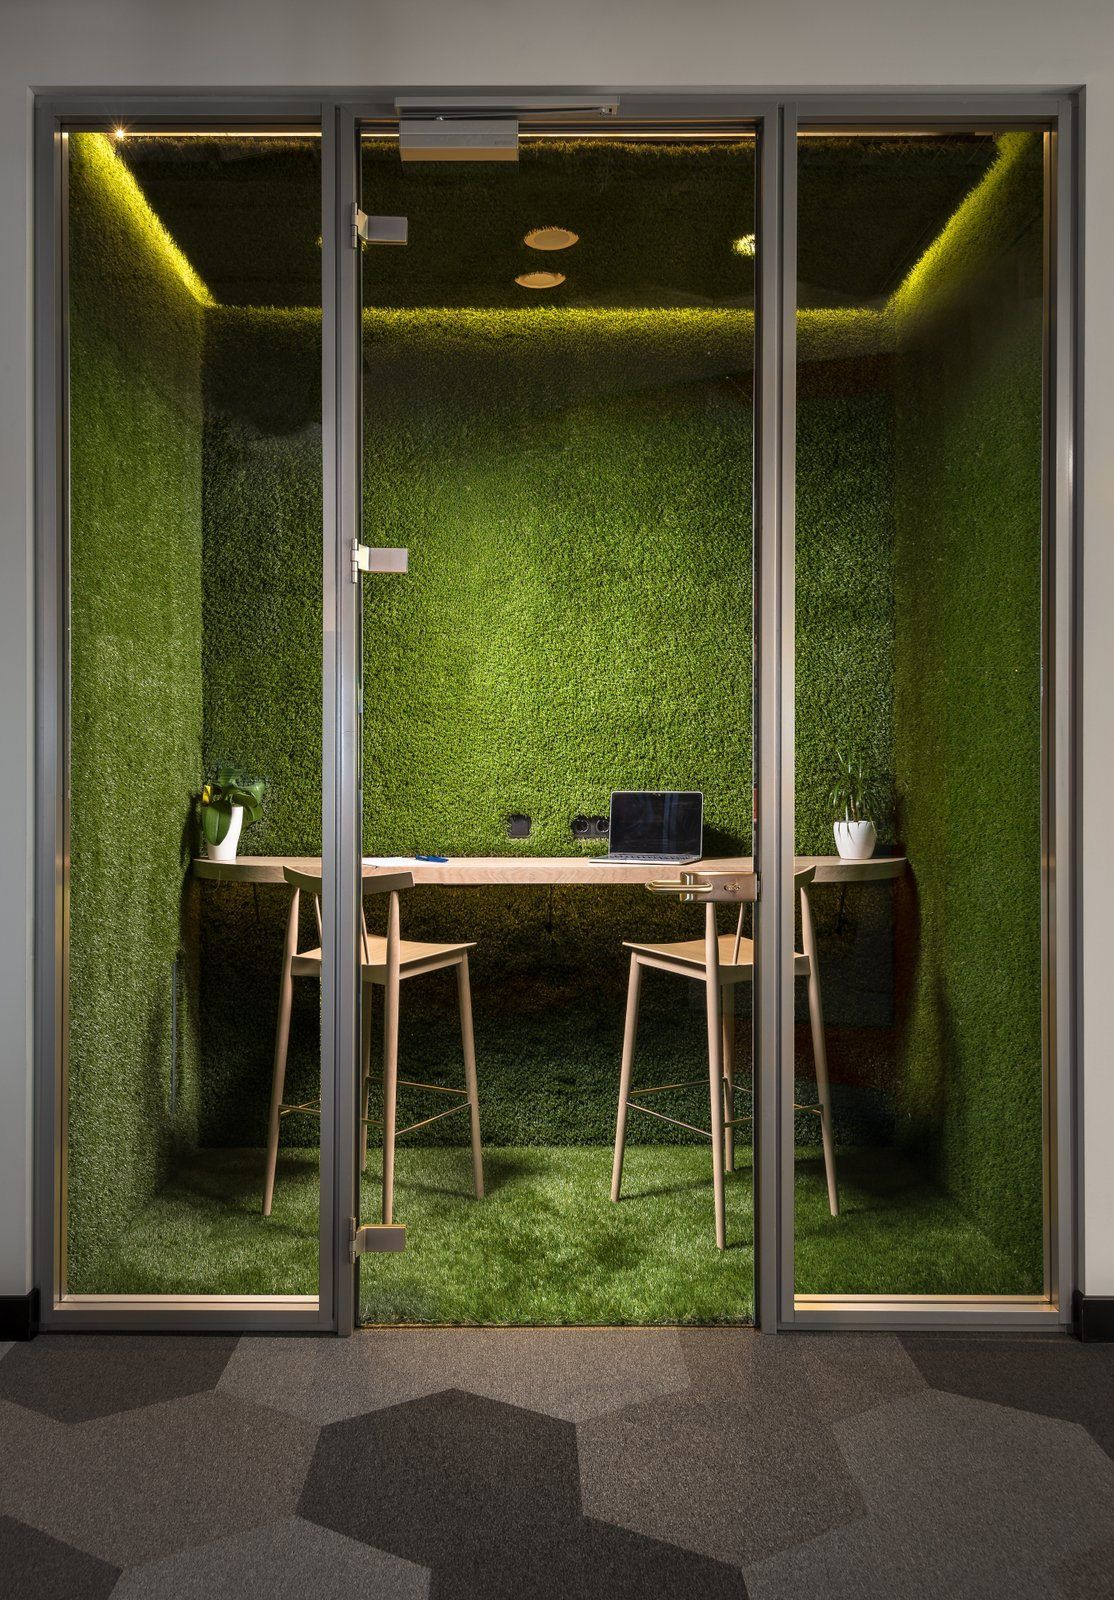 greenery office interiors. Moss Meeting Spaces Take Office Greenery To A New Level At ECommPay Offices Interiors